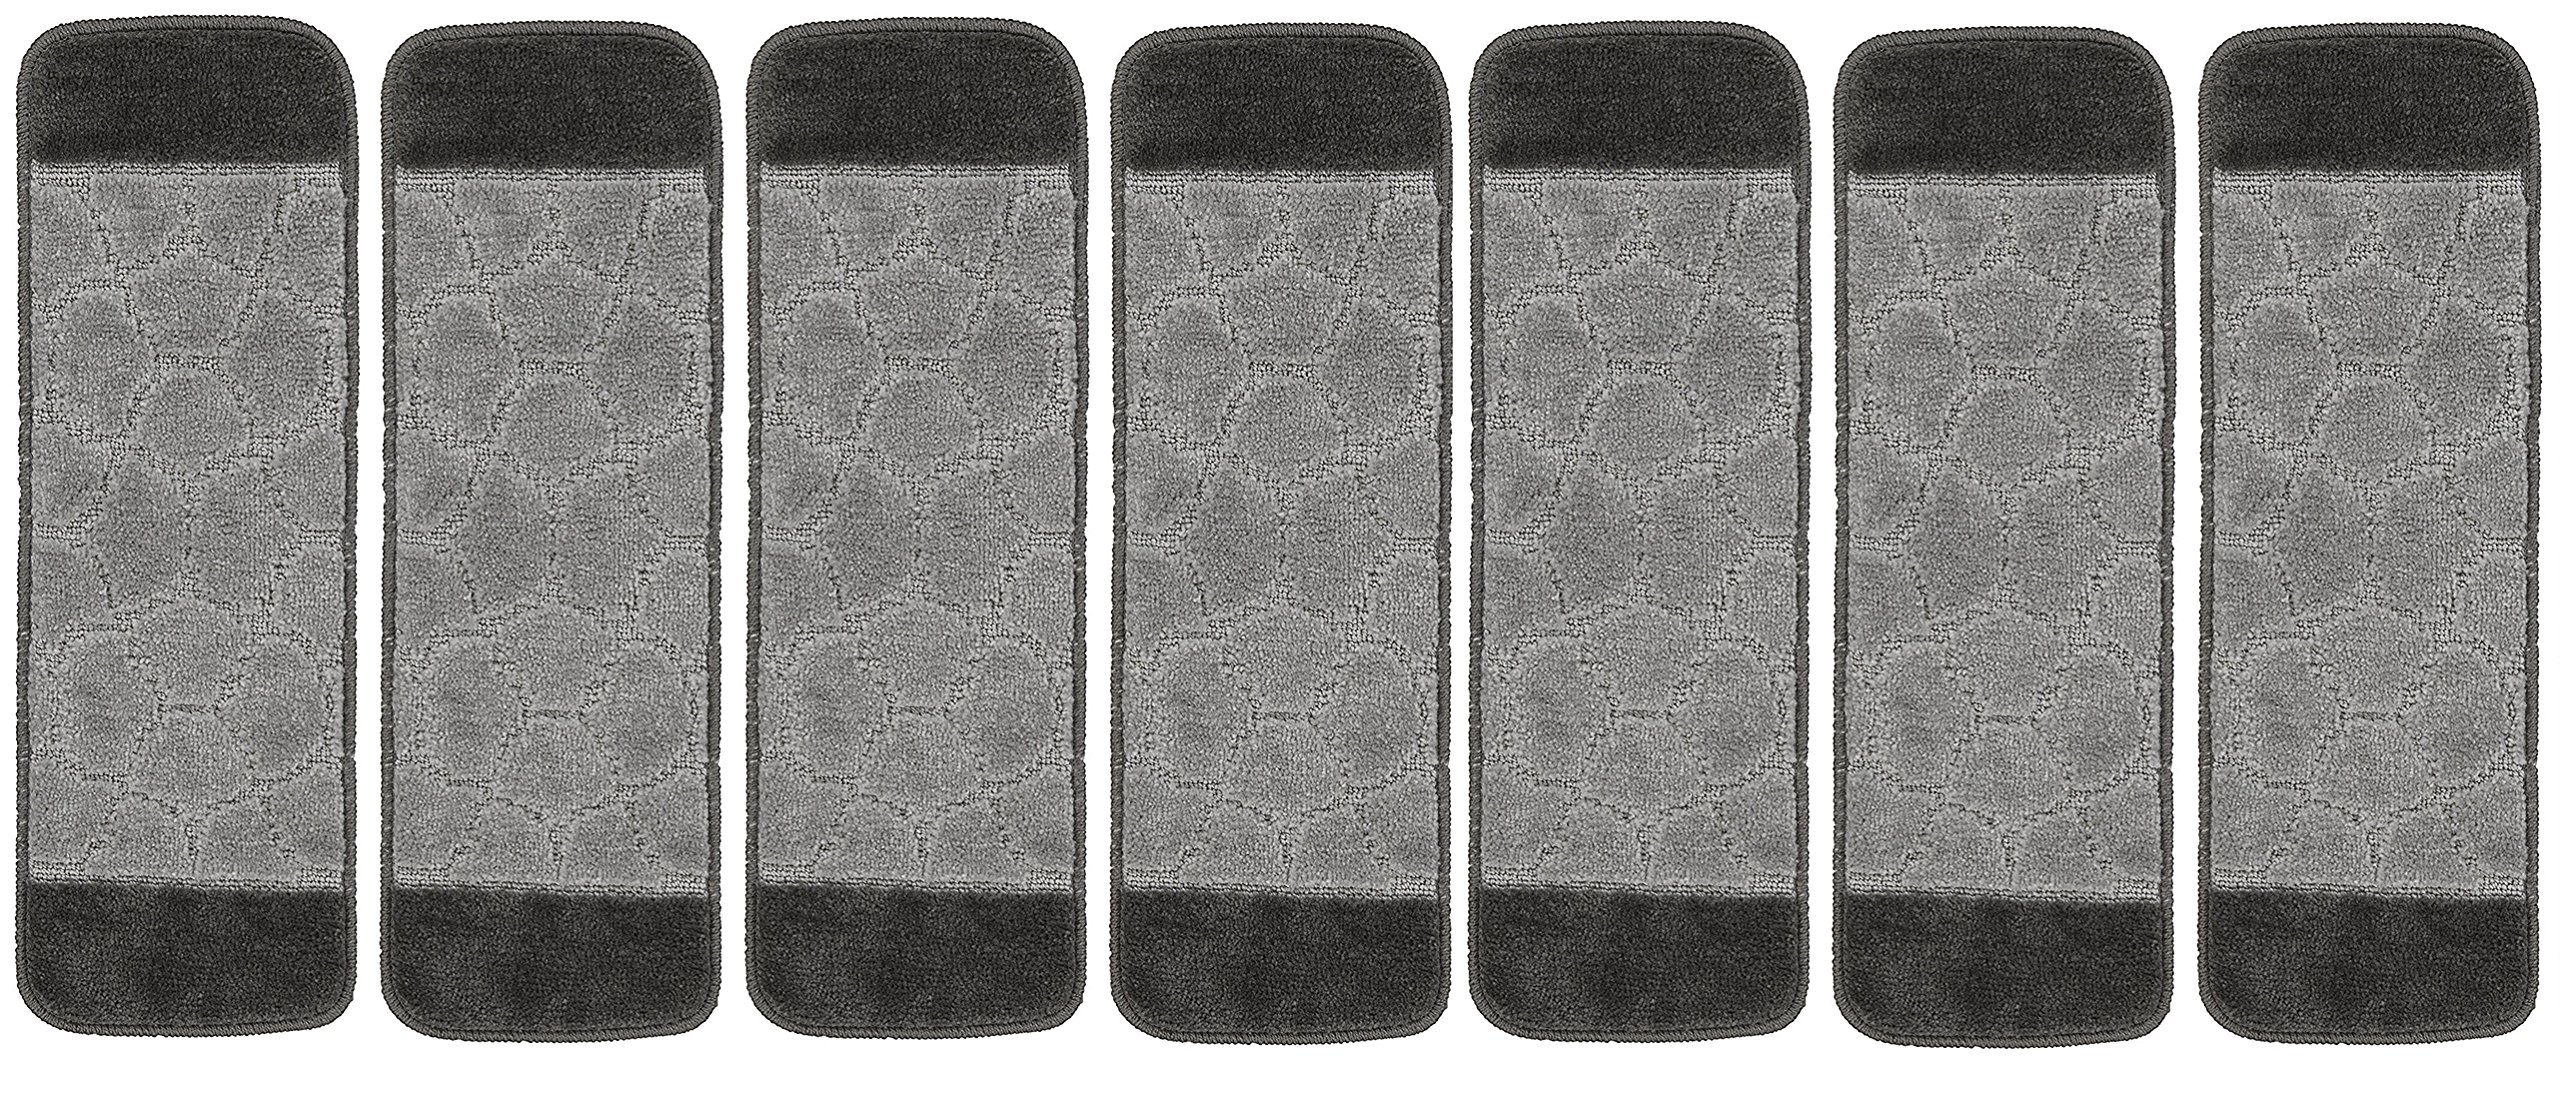 Ottomanson Softy Design Set of 7 Skid Resistant Rubber Backing Non Slip Carpet (9''x26'') Stair Tread Mats 7 Piece Set 9 inch by 26 inch, 9'' x 26'', Grey